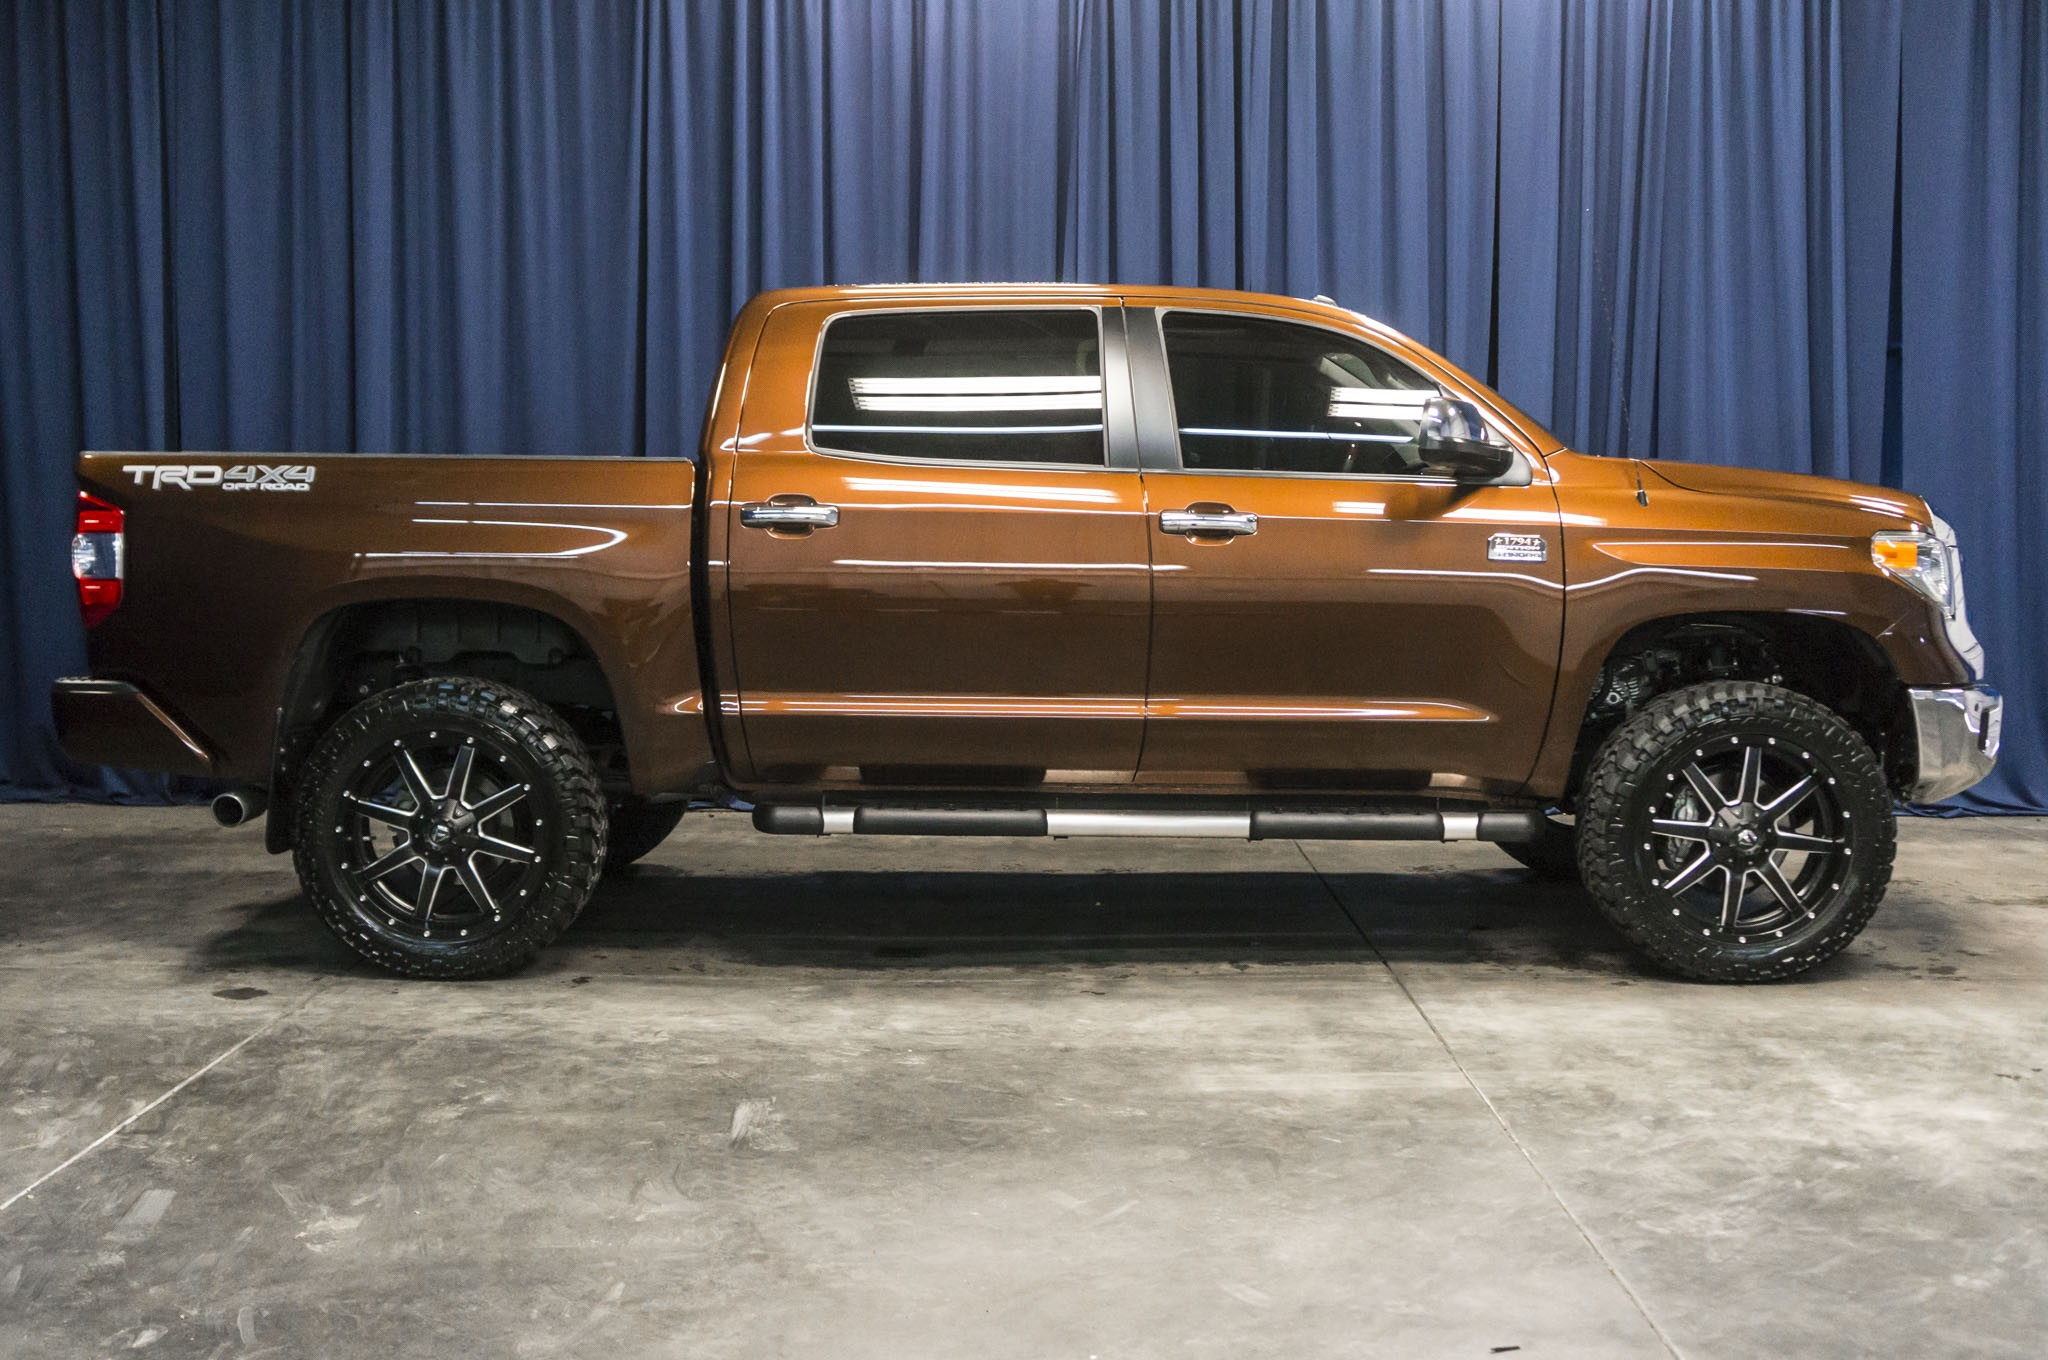 Used Lifted 2016 Toyota Tundra 1794 Edition 4x4 Truck For Sale C